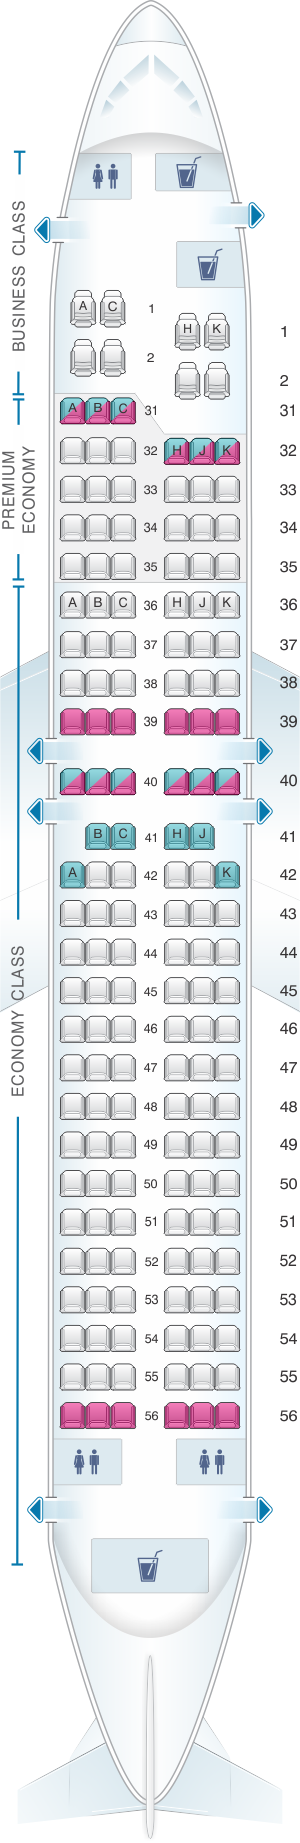 Seat map for China Southern Airlines Boeing B737 800 Layout C